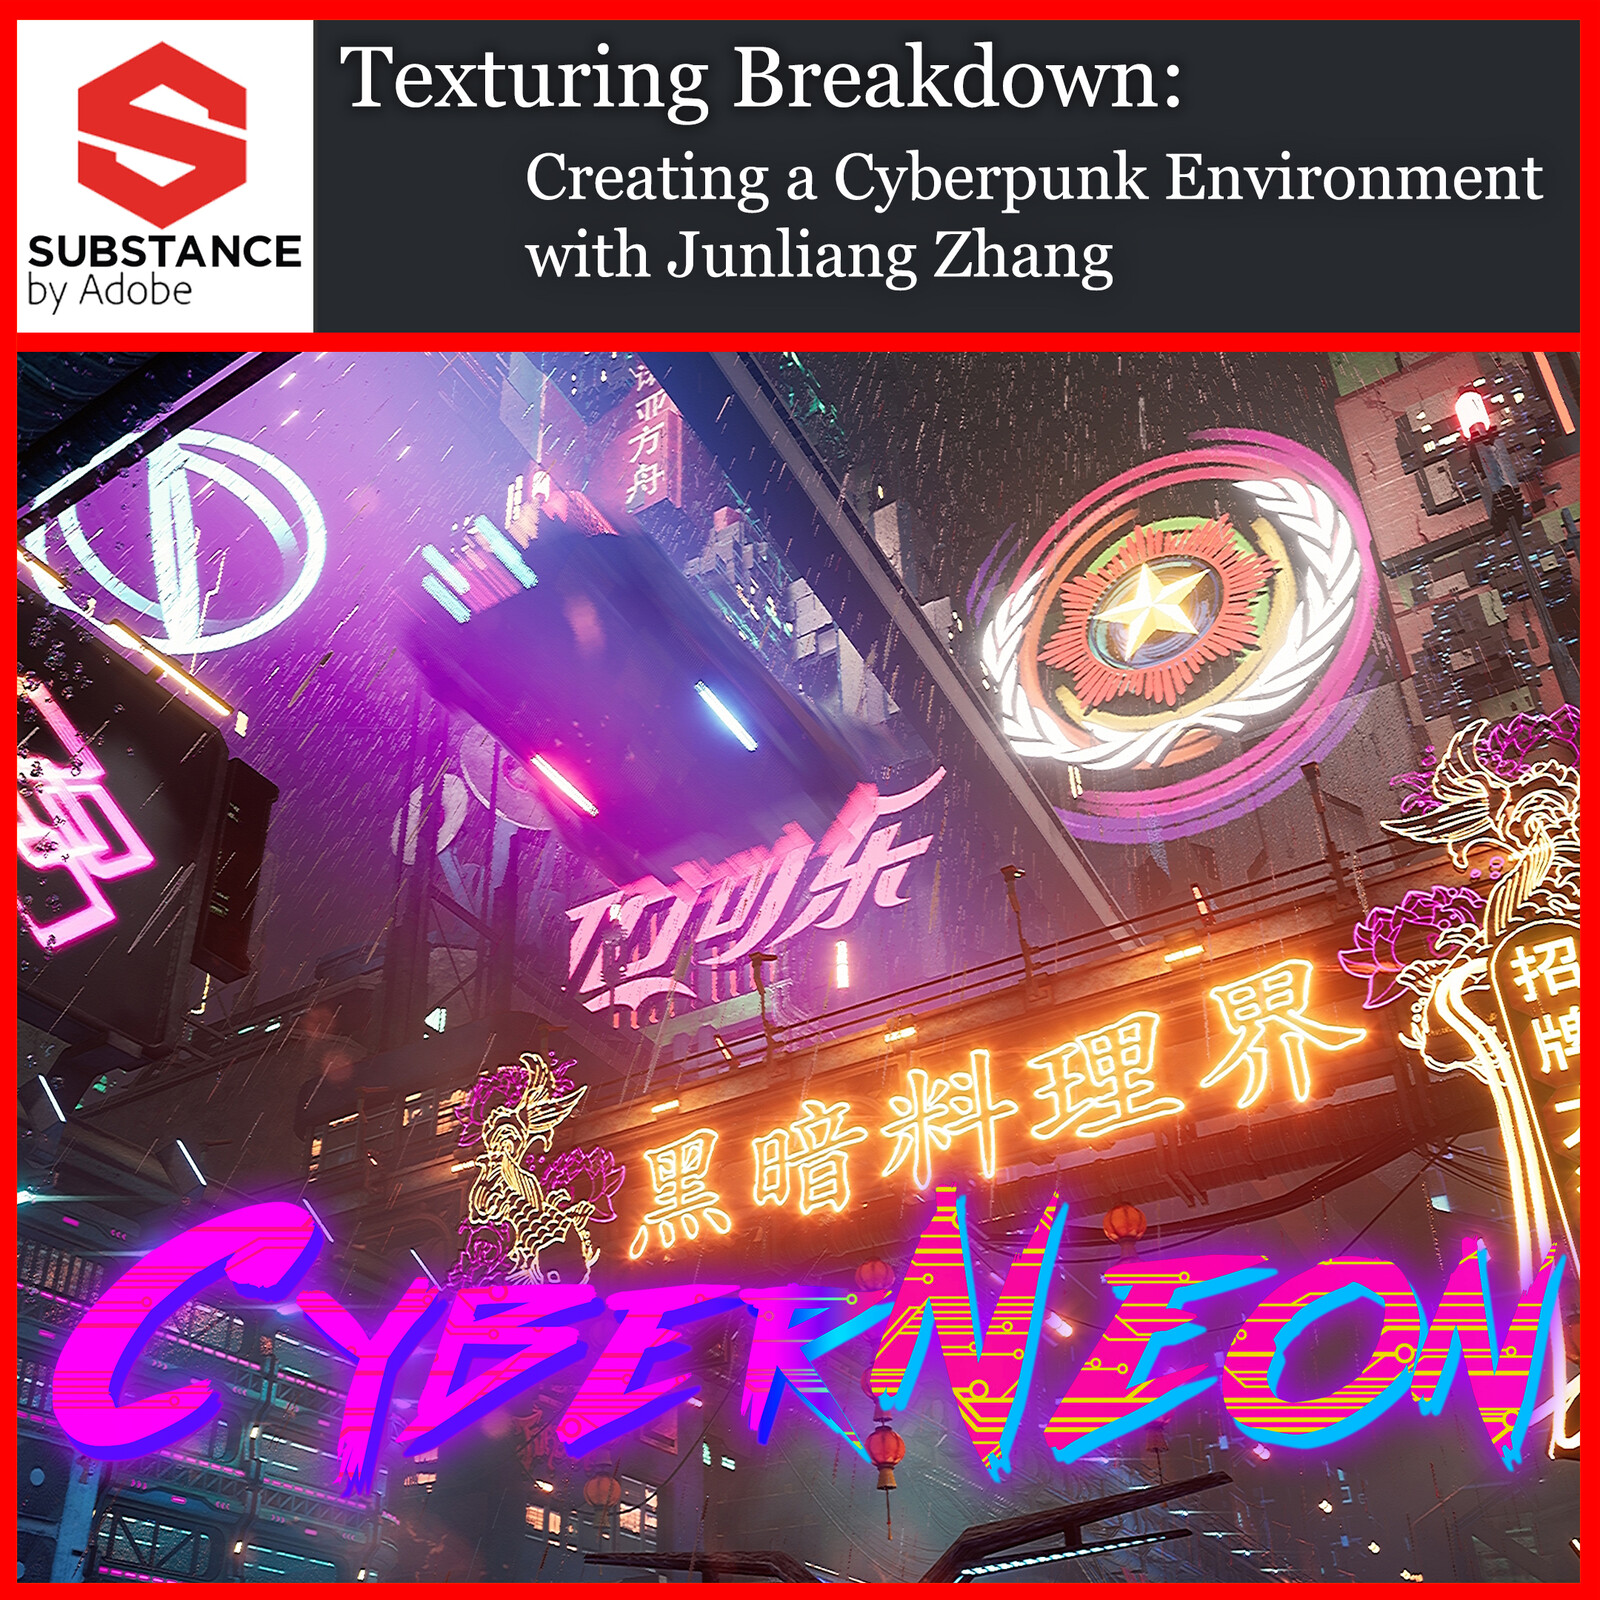 Adobe Substance Article Texturing Breakdown – Creating a Cyberpunk Environment with Junliang Zhang